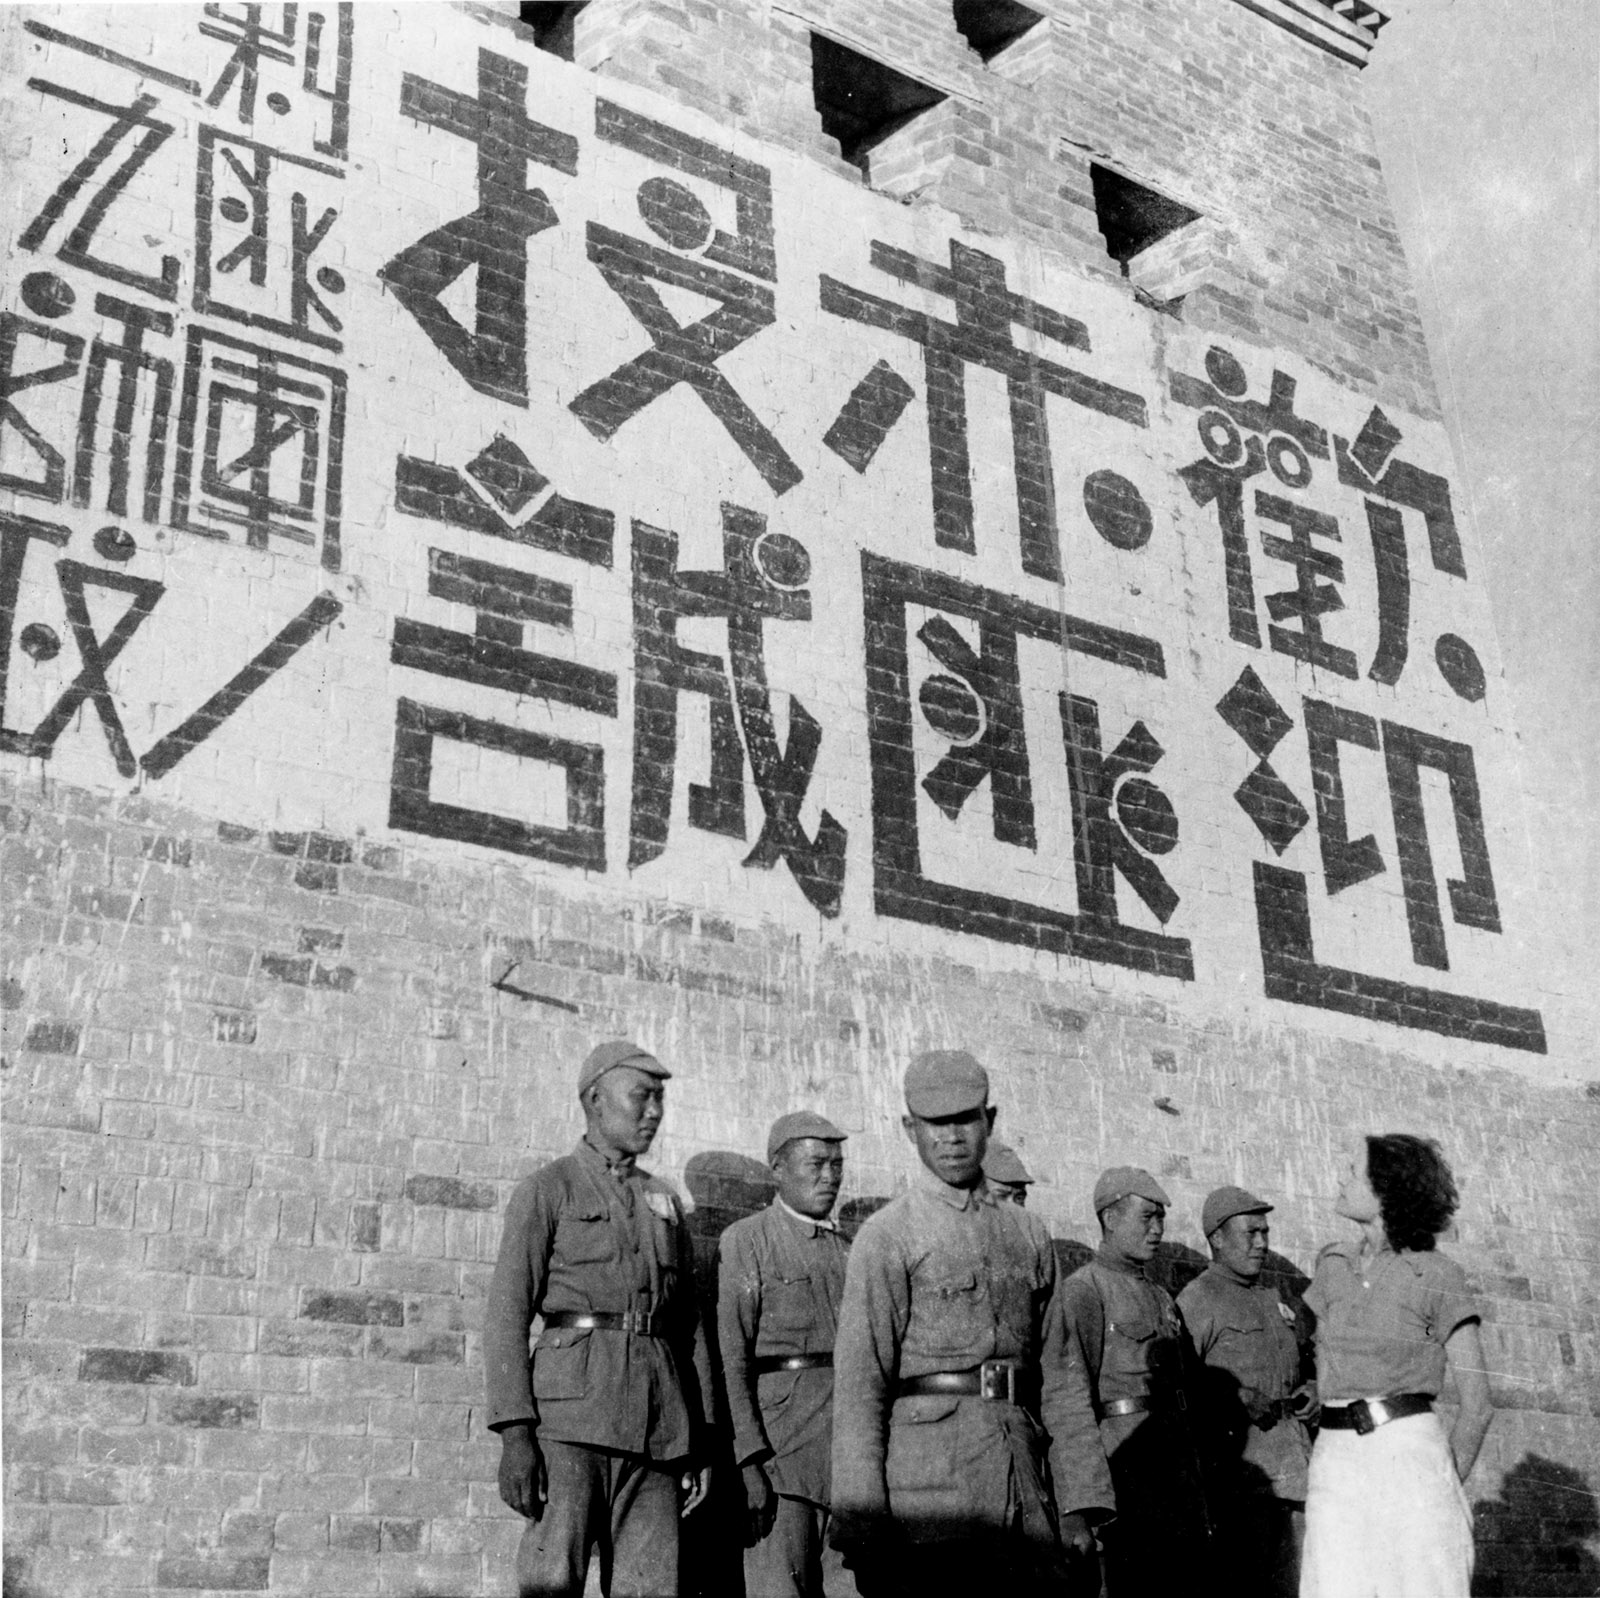 Helen Foster Snow with a group of Manchurian soldiers who had joined Mao's Red Army, Shaanxi province, China